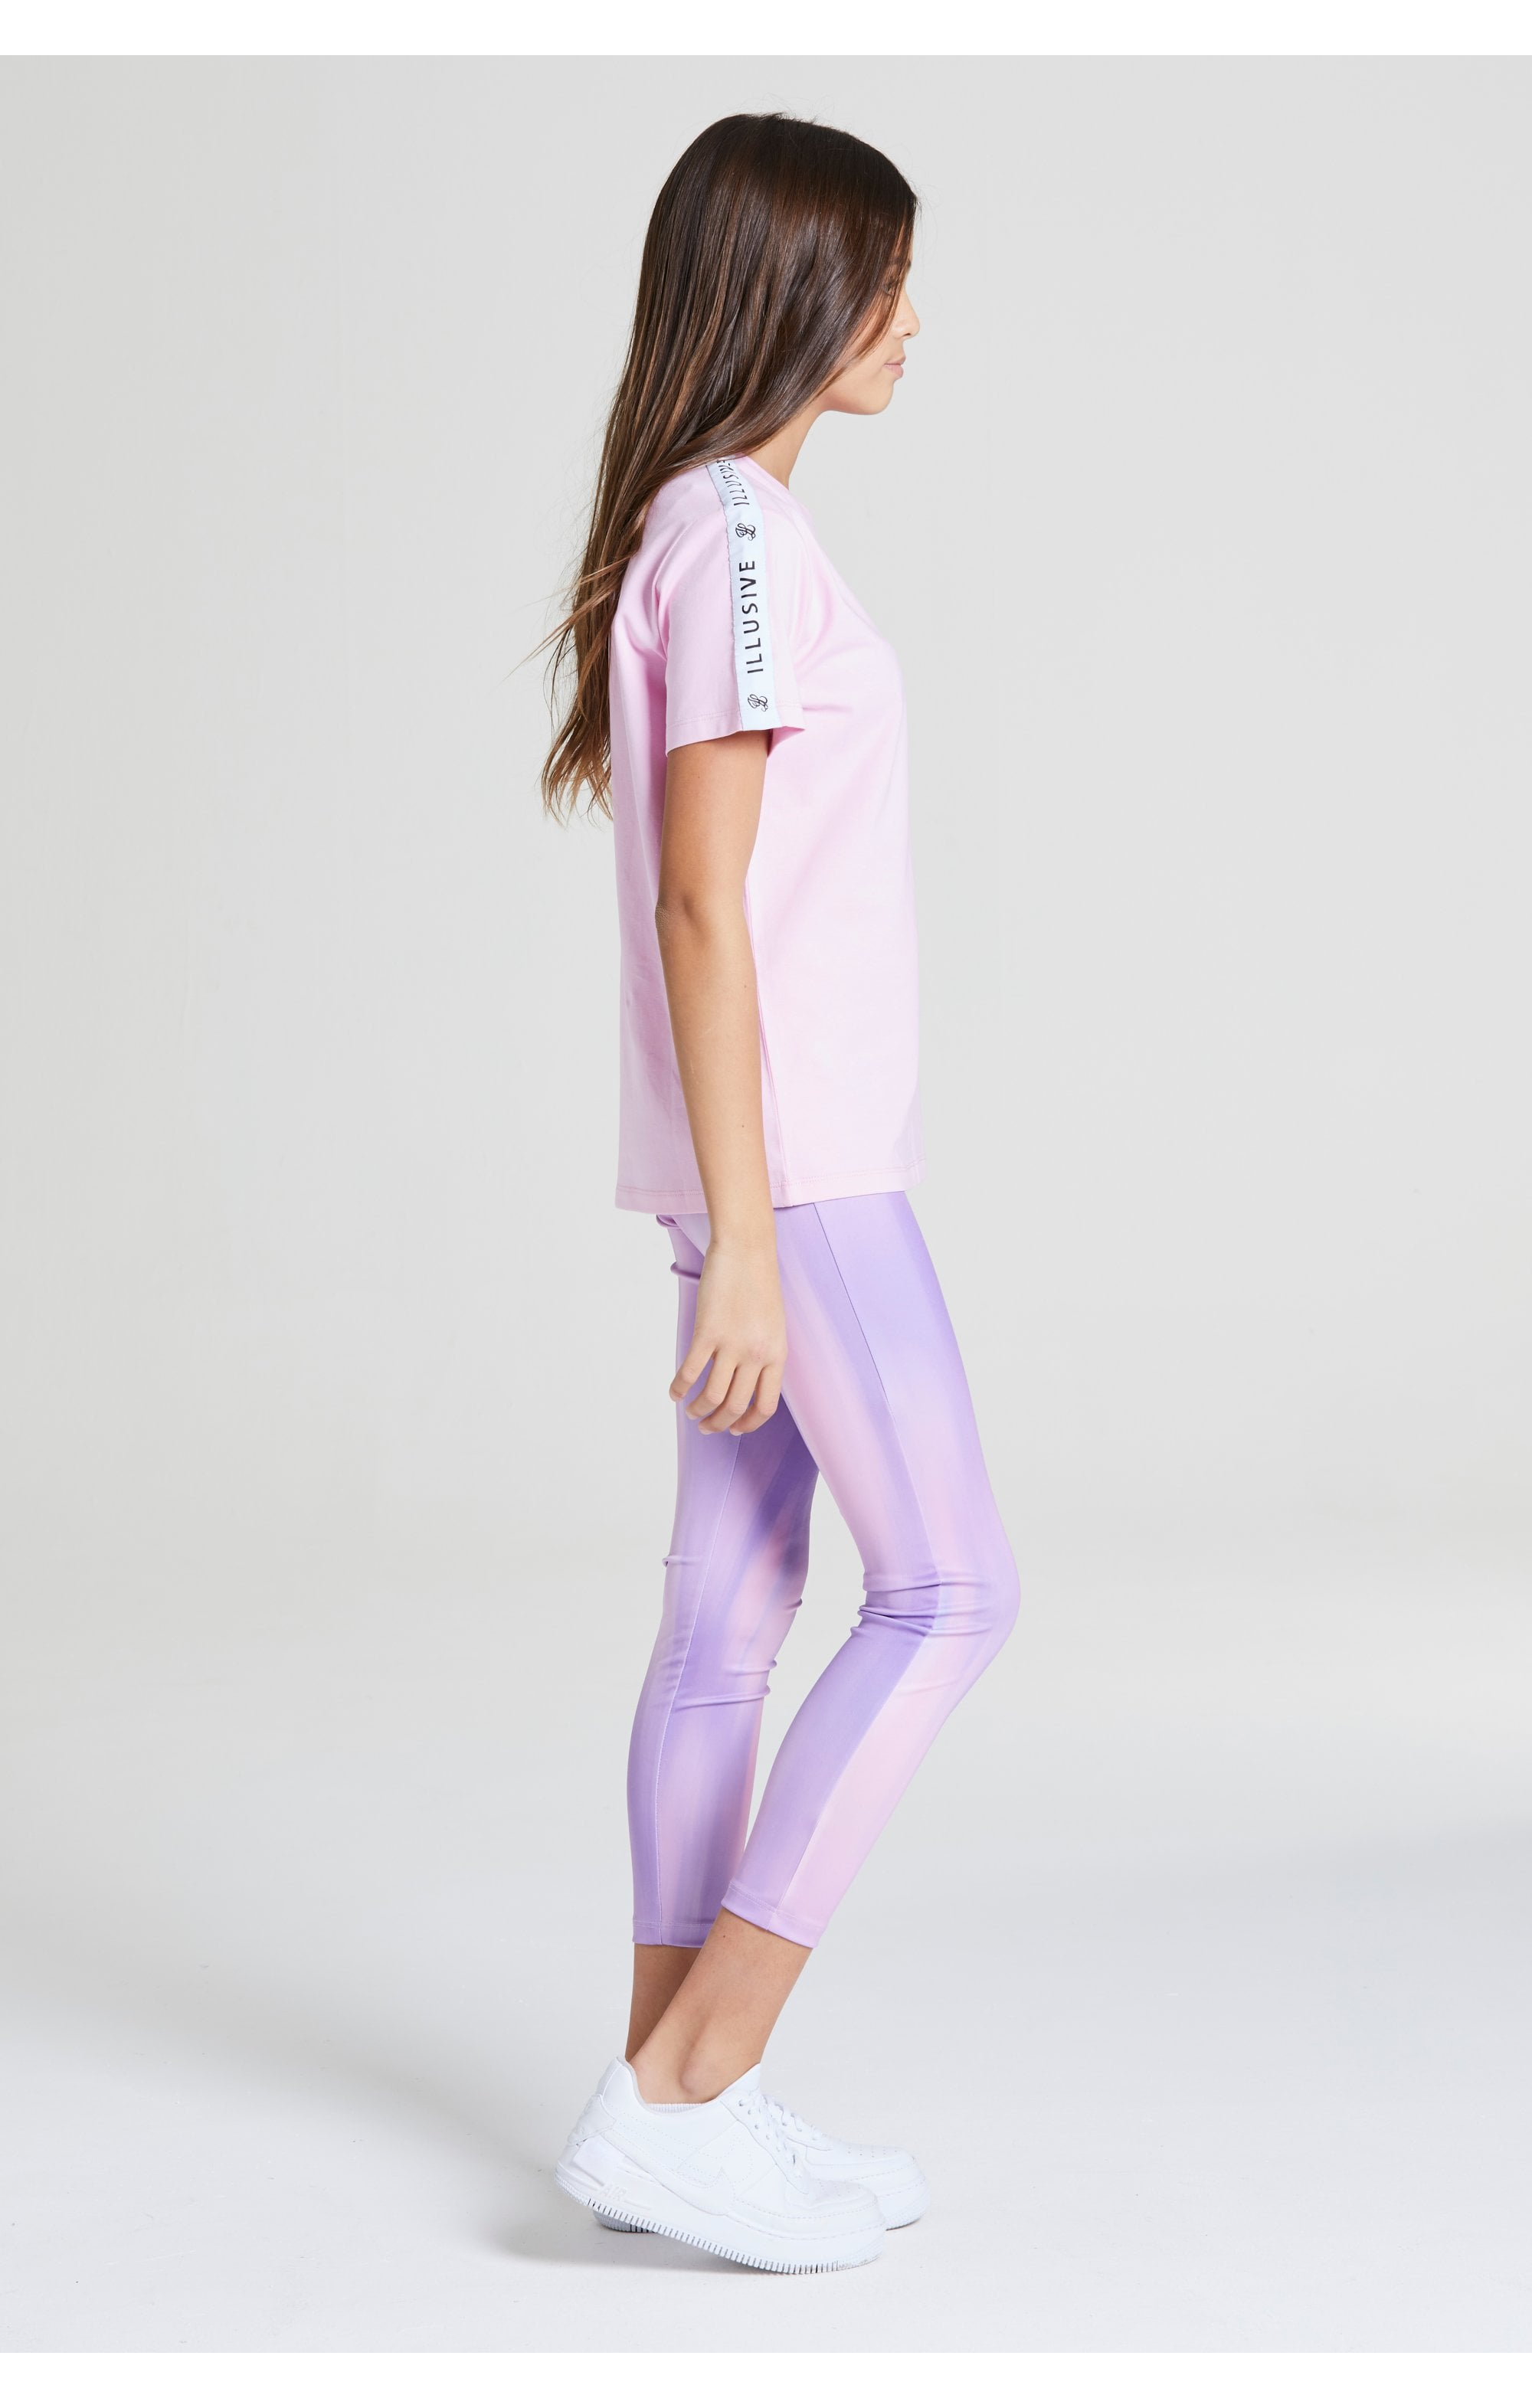 Illusive London BF Fit Taped Tee -  Pink (5)